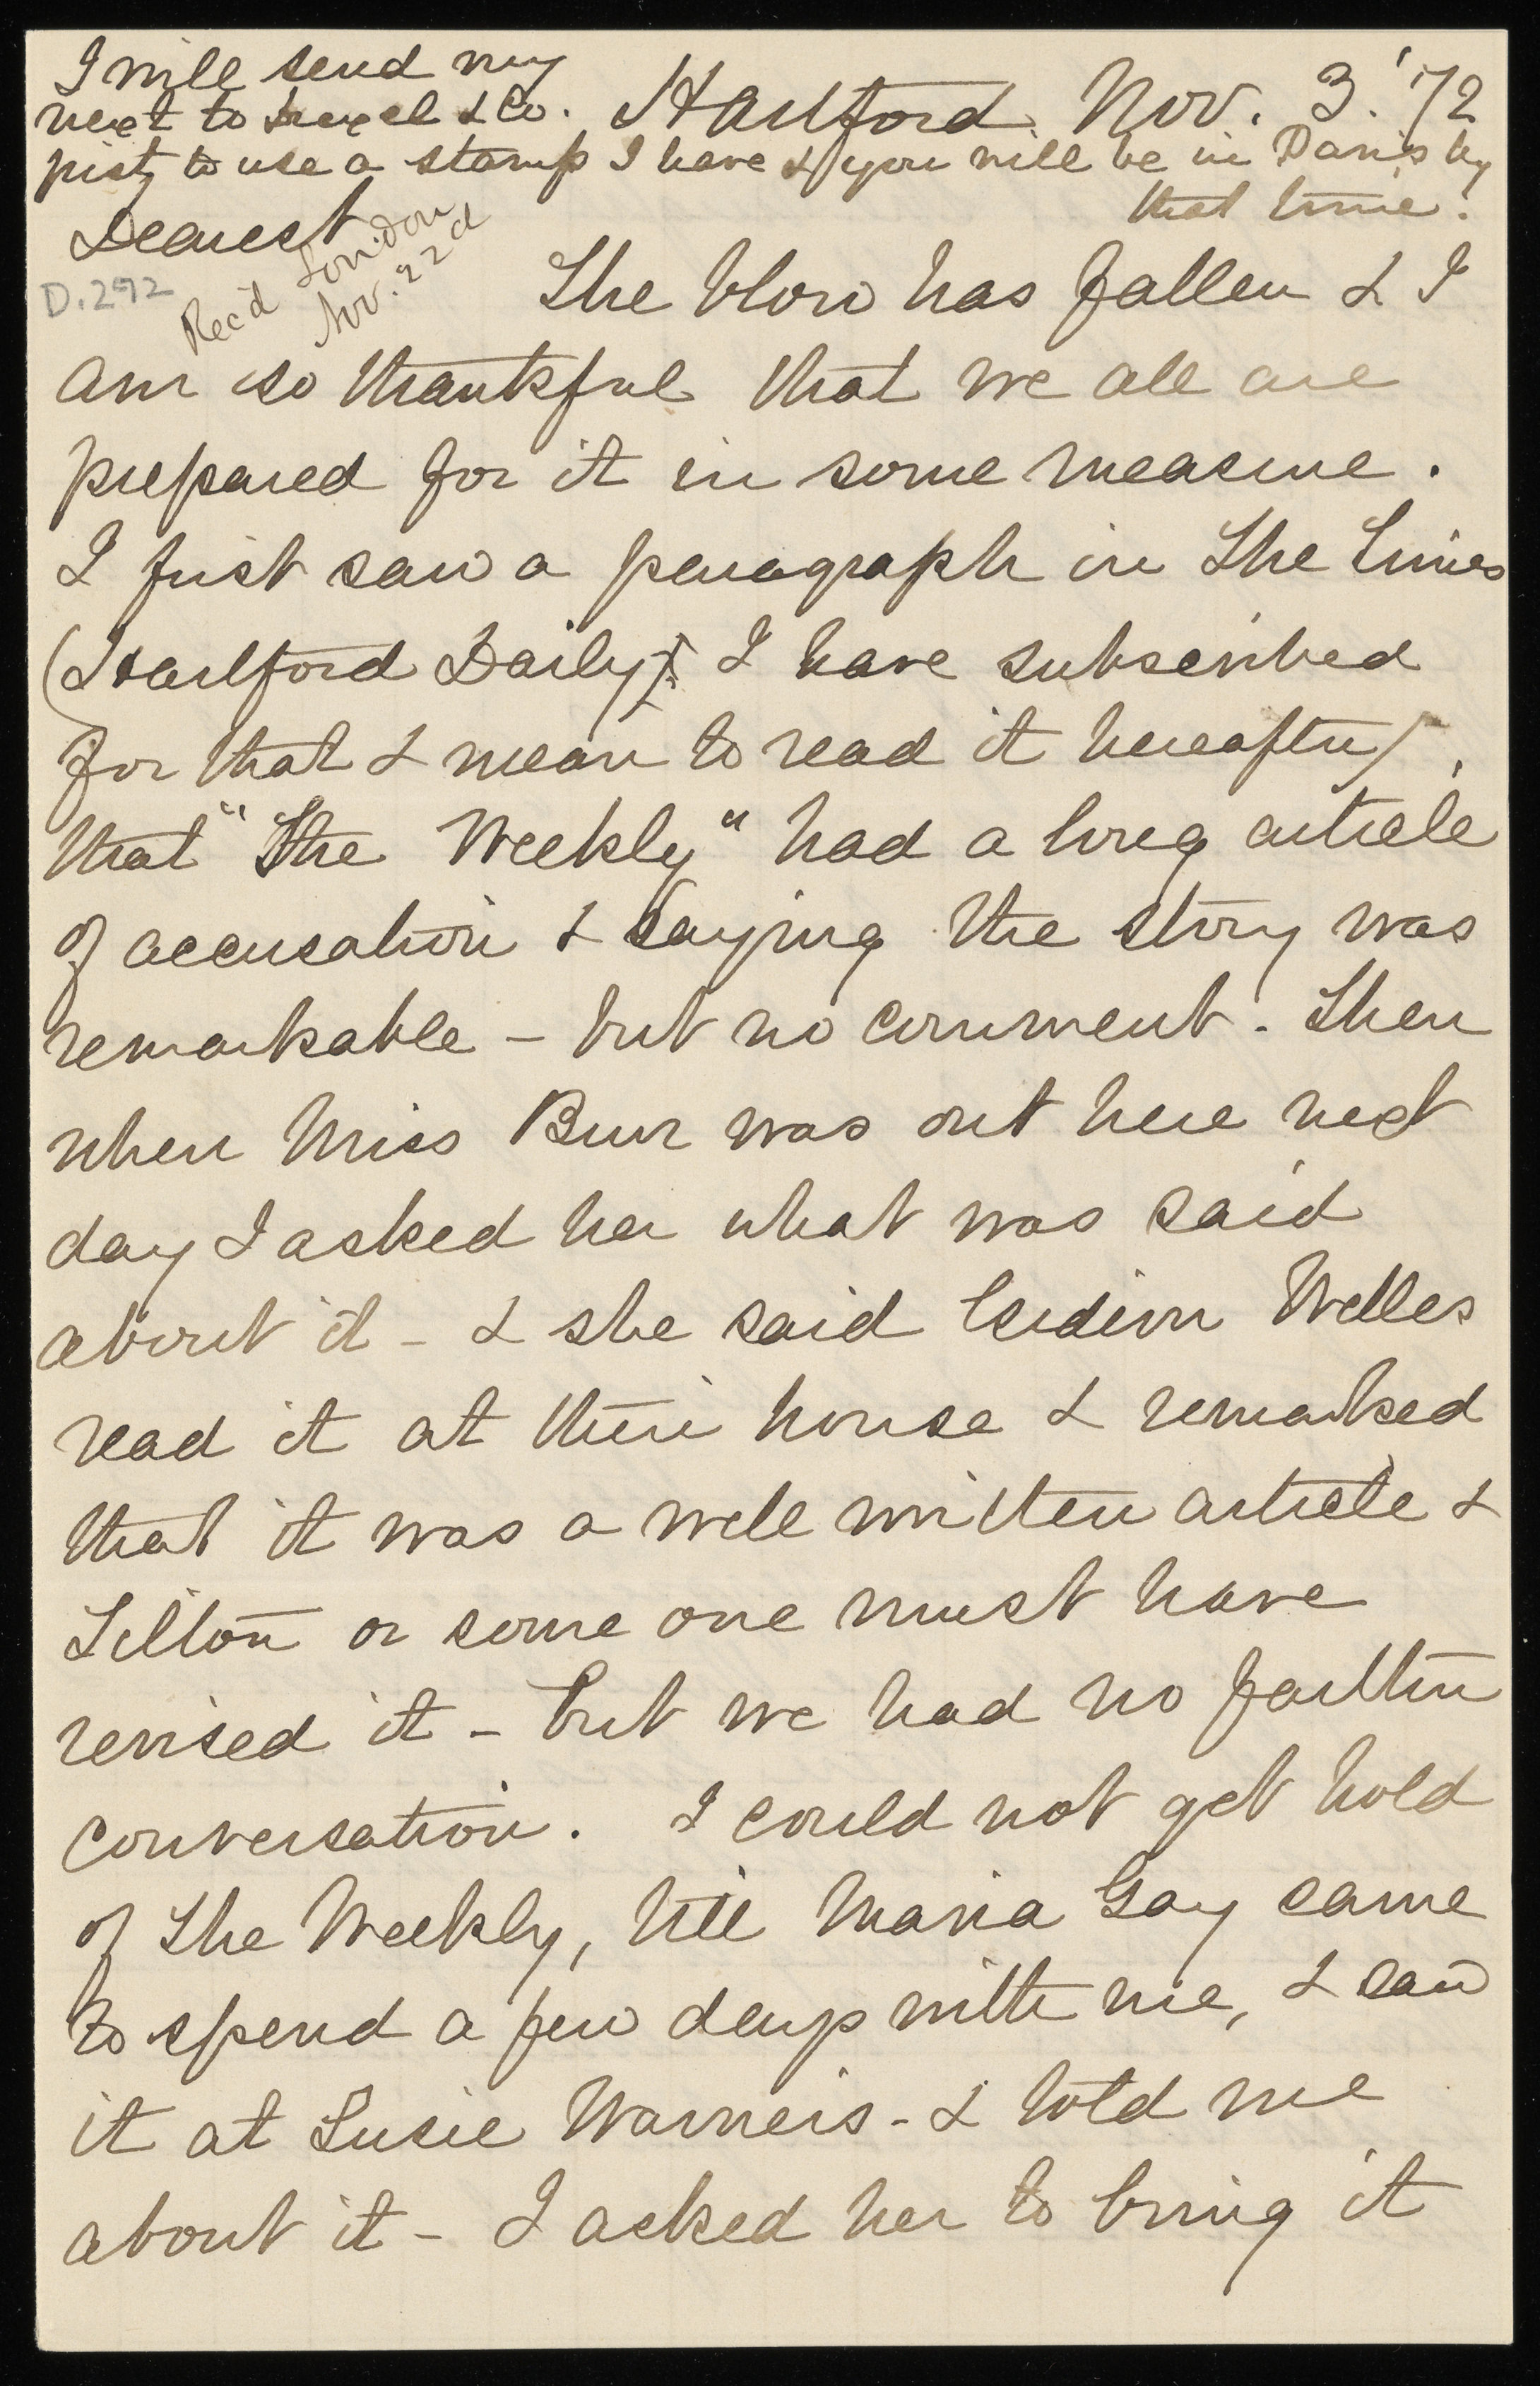 Isabella Beecher Hooker writes to her husband telling him that the Beecher-Tilton scandal came out in the newspapers.